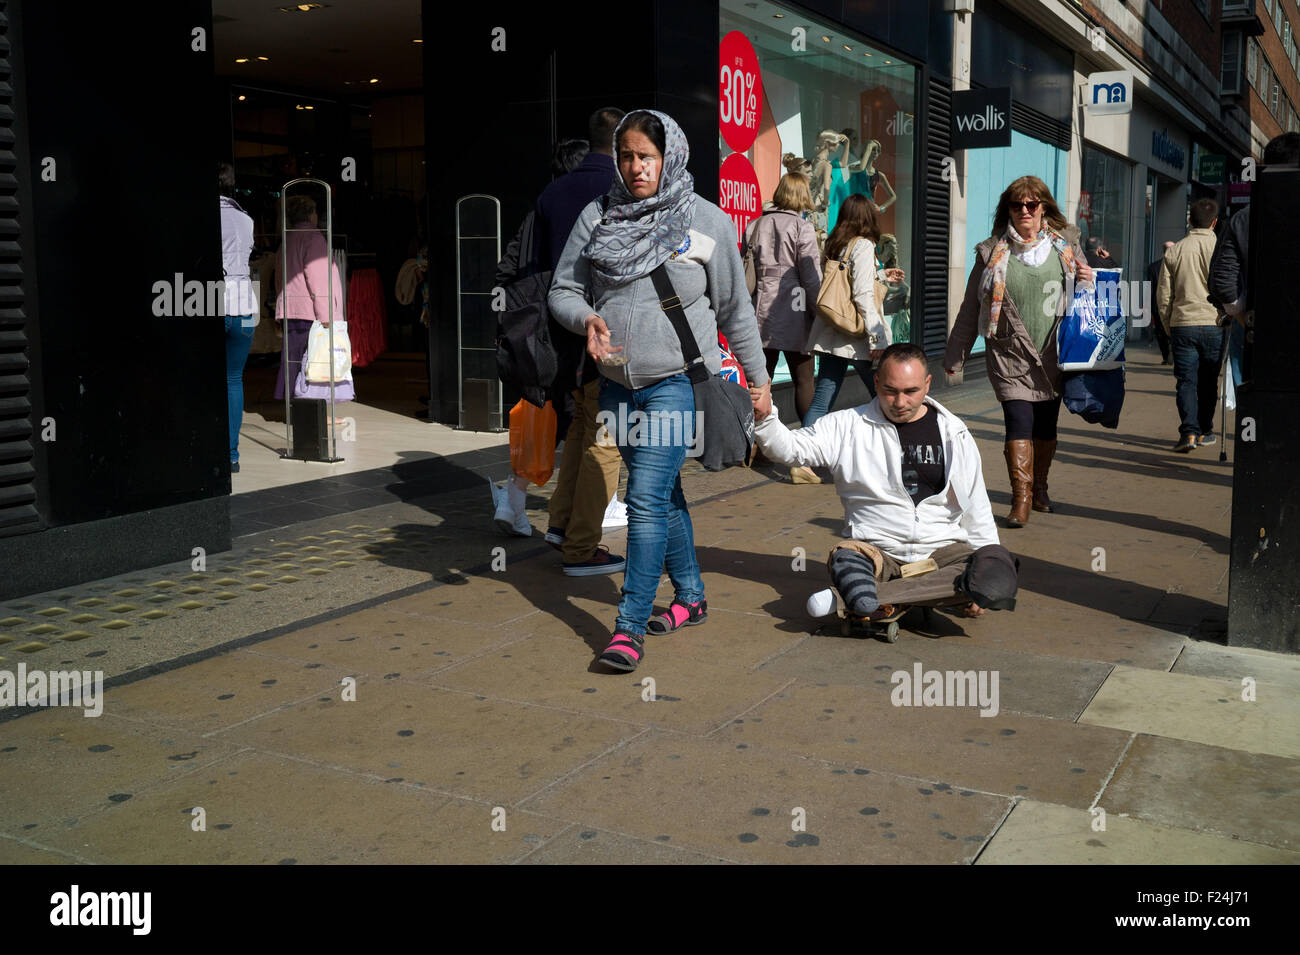 A Legless Beggar Being Pulled Down Oxford Street By Woman On Skate Board